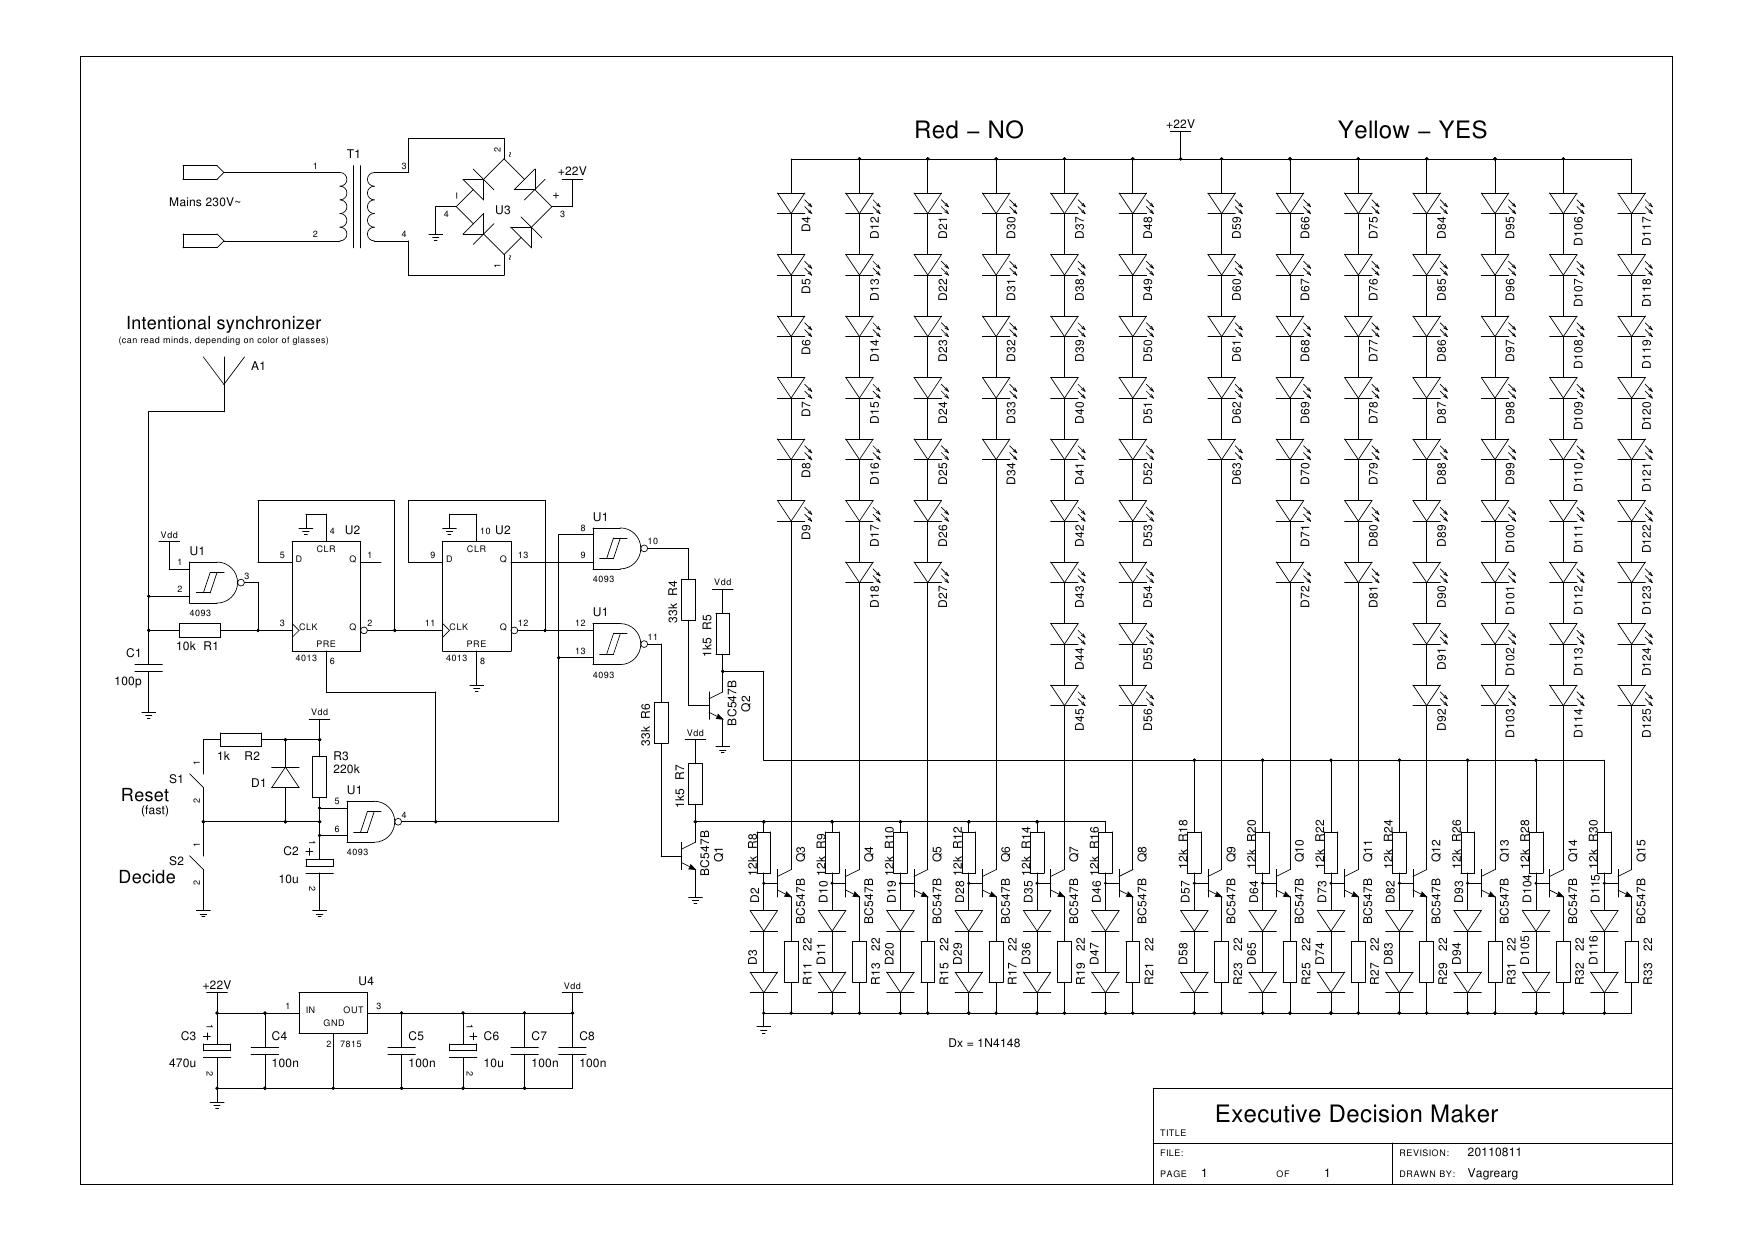 Parrot Mki9200 Wiring Diagram in addition Wiring Diagram For Honeywell Thermostat Th5220d1003 further Honeywell Iaq Wiring Diagram furthermore Honeywell Zone Valve Wiring Diagram How It Works further Freightliner Wiring Diagrams Free. on wiring diagram for honeywell th5220d1003